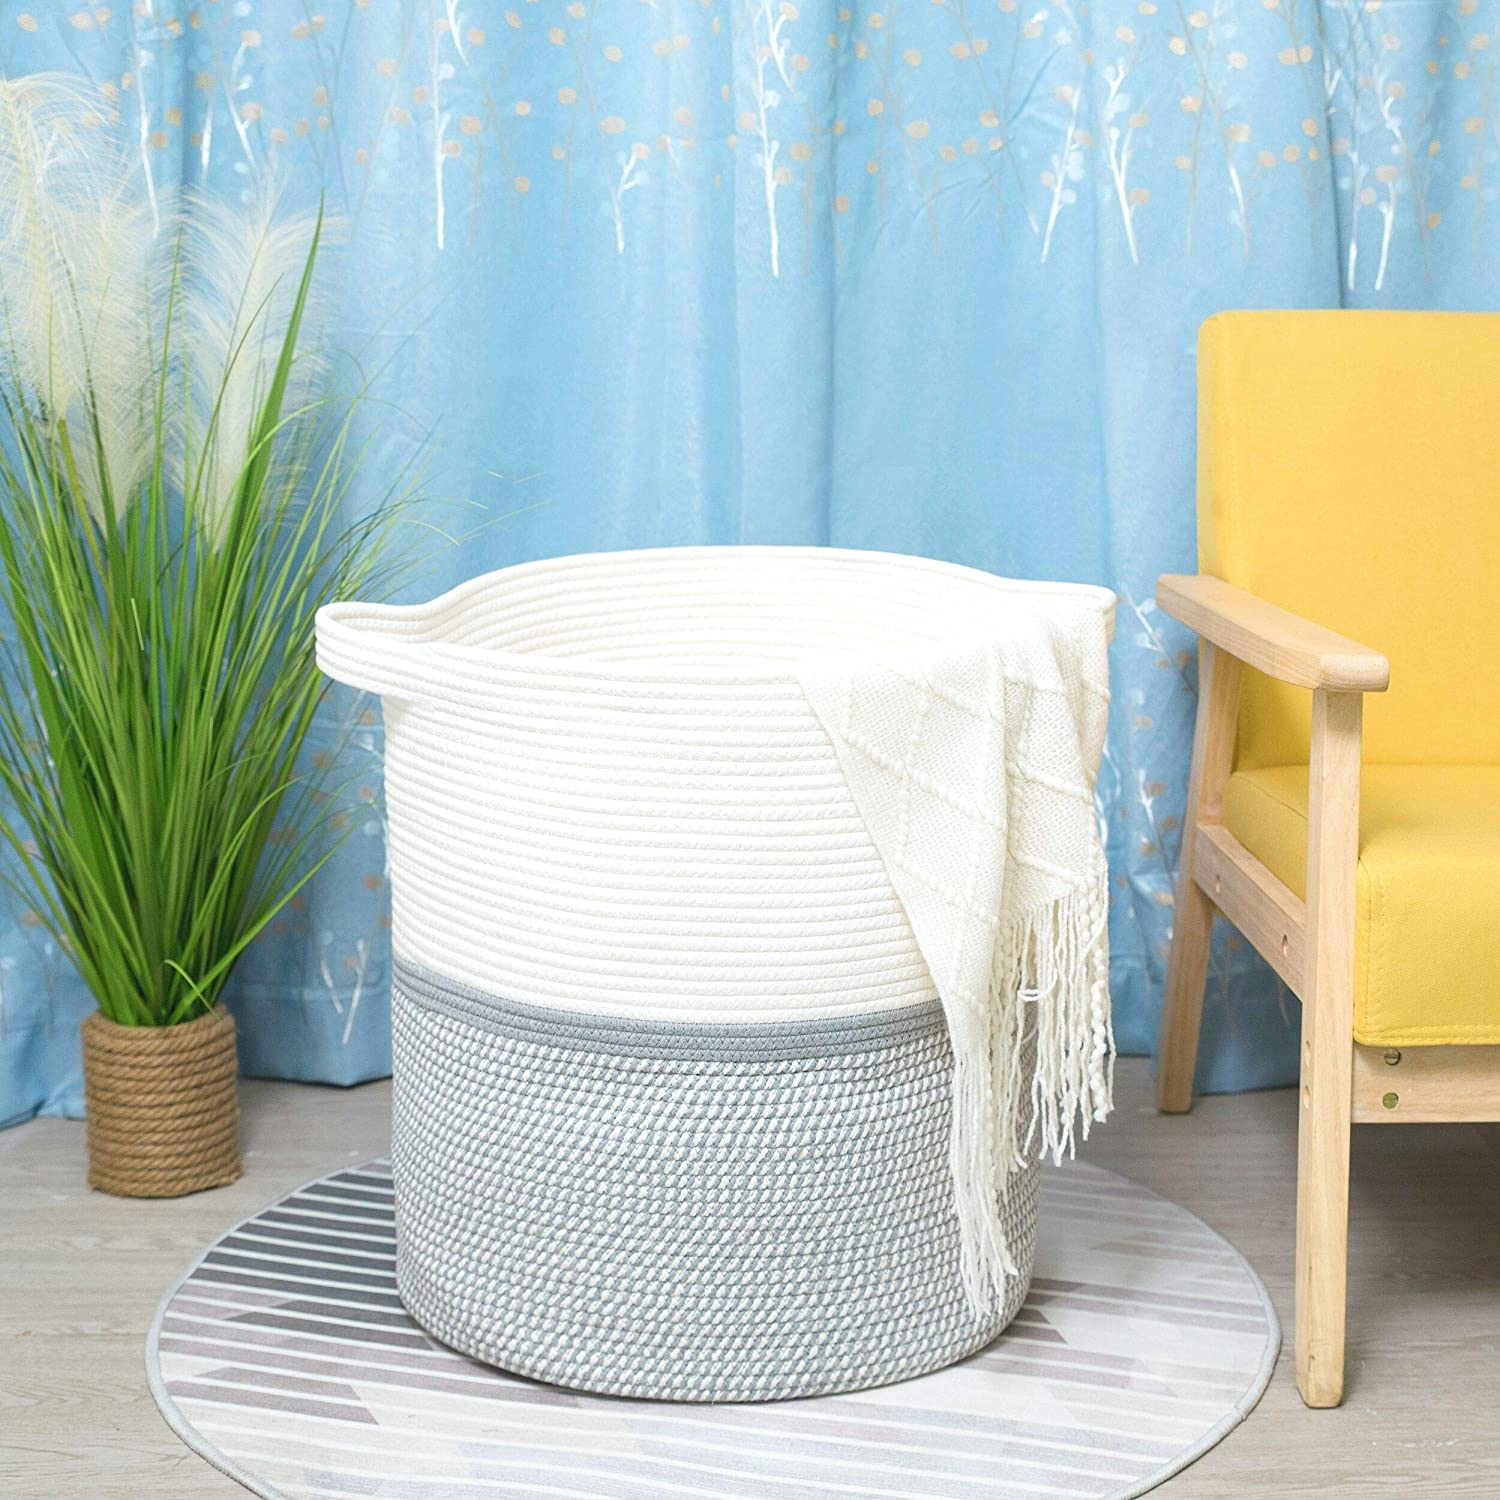 MINTWOOD Design Extra Large 20 x 18 Inches Decorative Woven Cotton Rope Basket, Tall Laundry Basket Hamper, Blanket Basket for Living Room, Round Storage Baskets for Pillows, Towels, Light Grey Mix